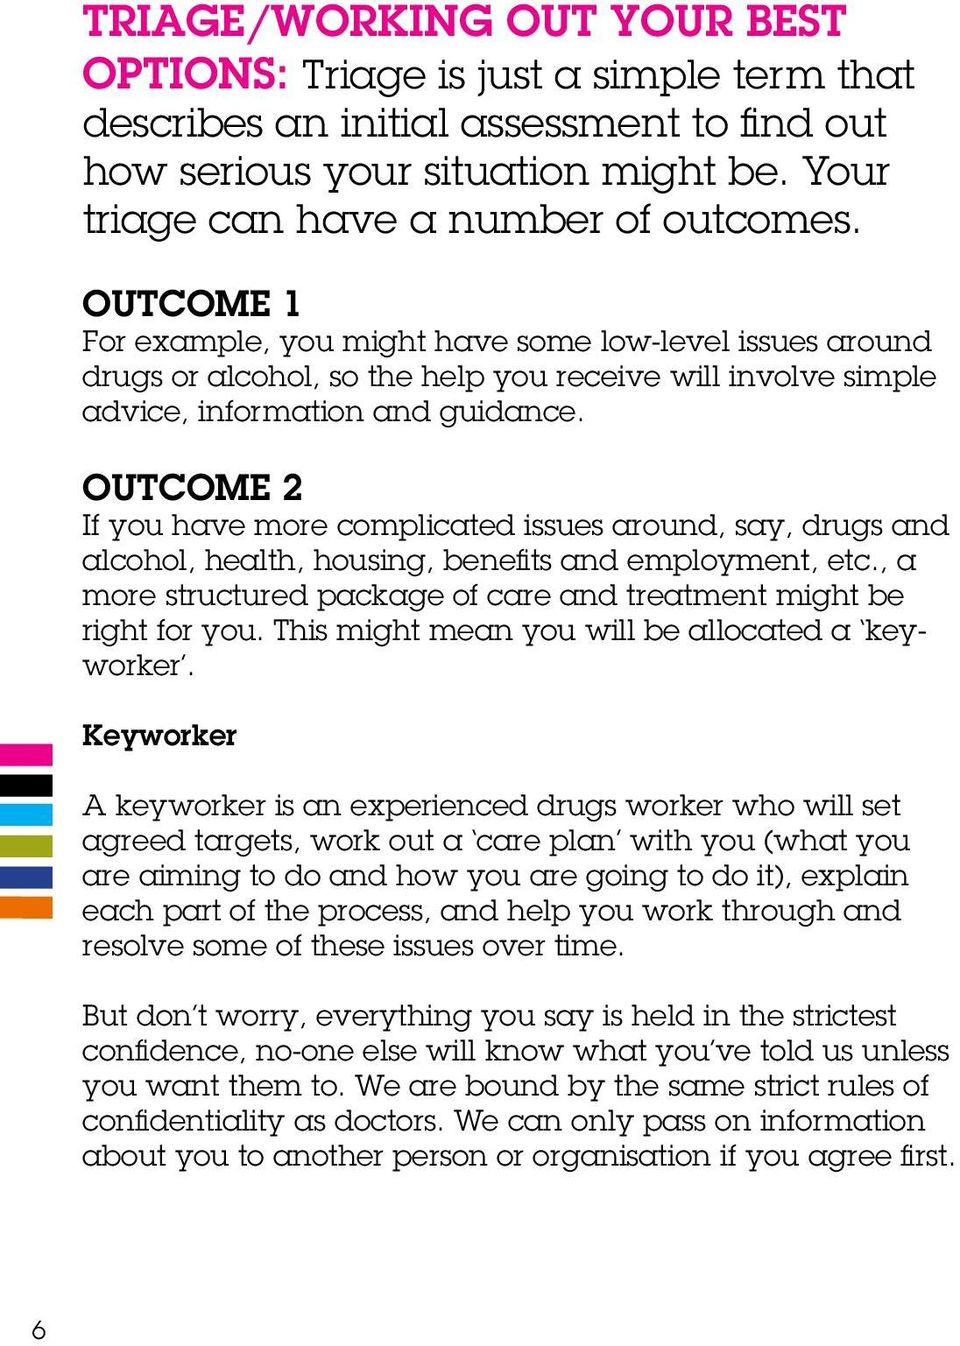 OUTCOME 2 If you have more complicated issues around, say, drugs and alcohol, health, housing, benefits and employment, etc., a more structured package of care and treatment might be right for you.